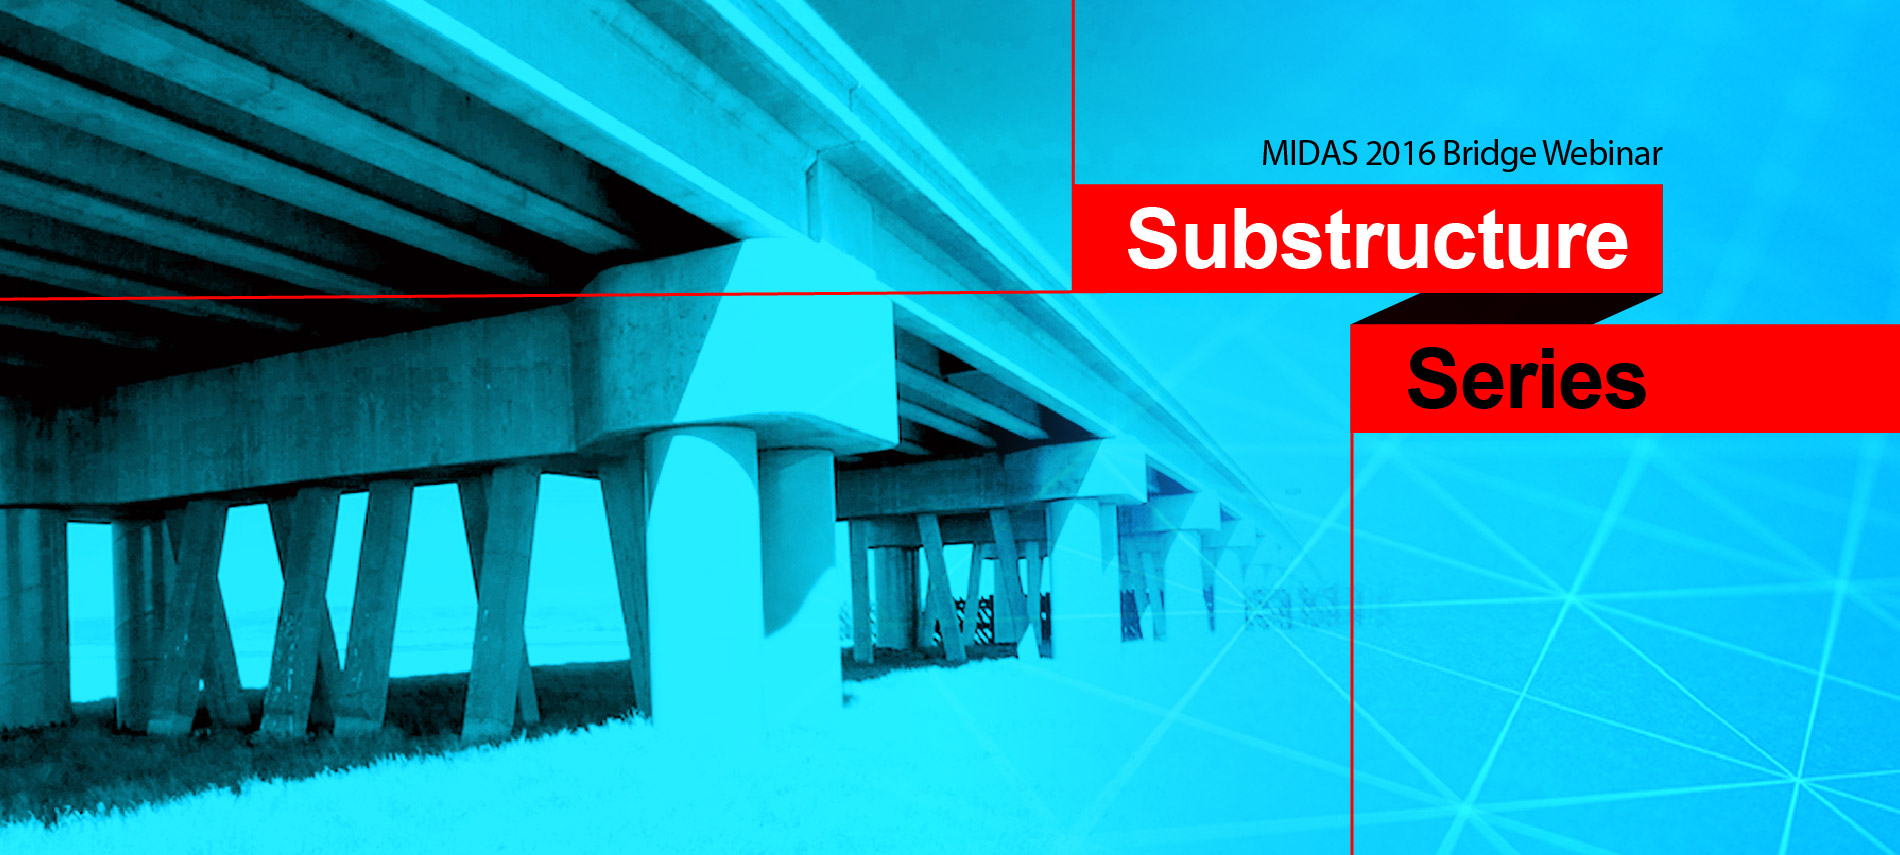 Substructure Series 2016